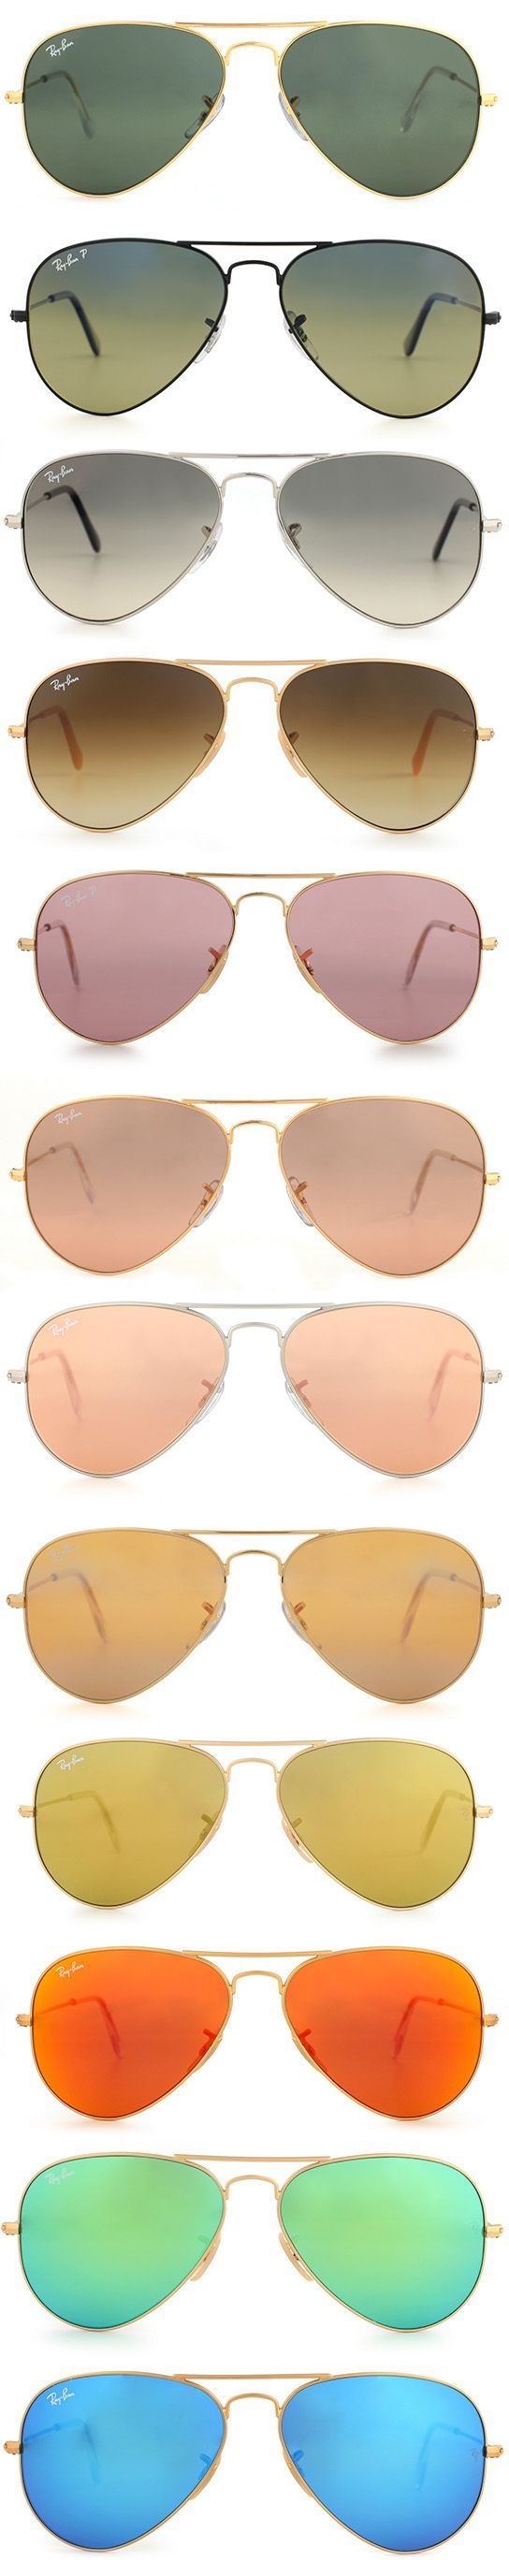 Follow the Ray-Ban Rainbow http://www.framesdirect.com/framesfp/RayBan-sdpes/lb.html